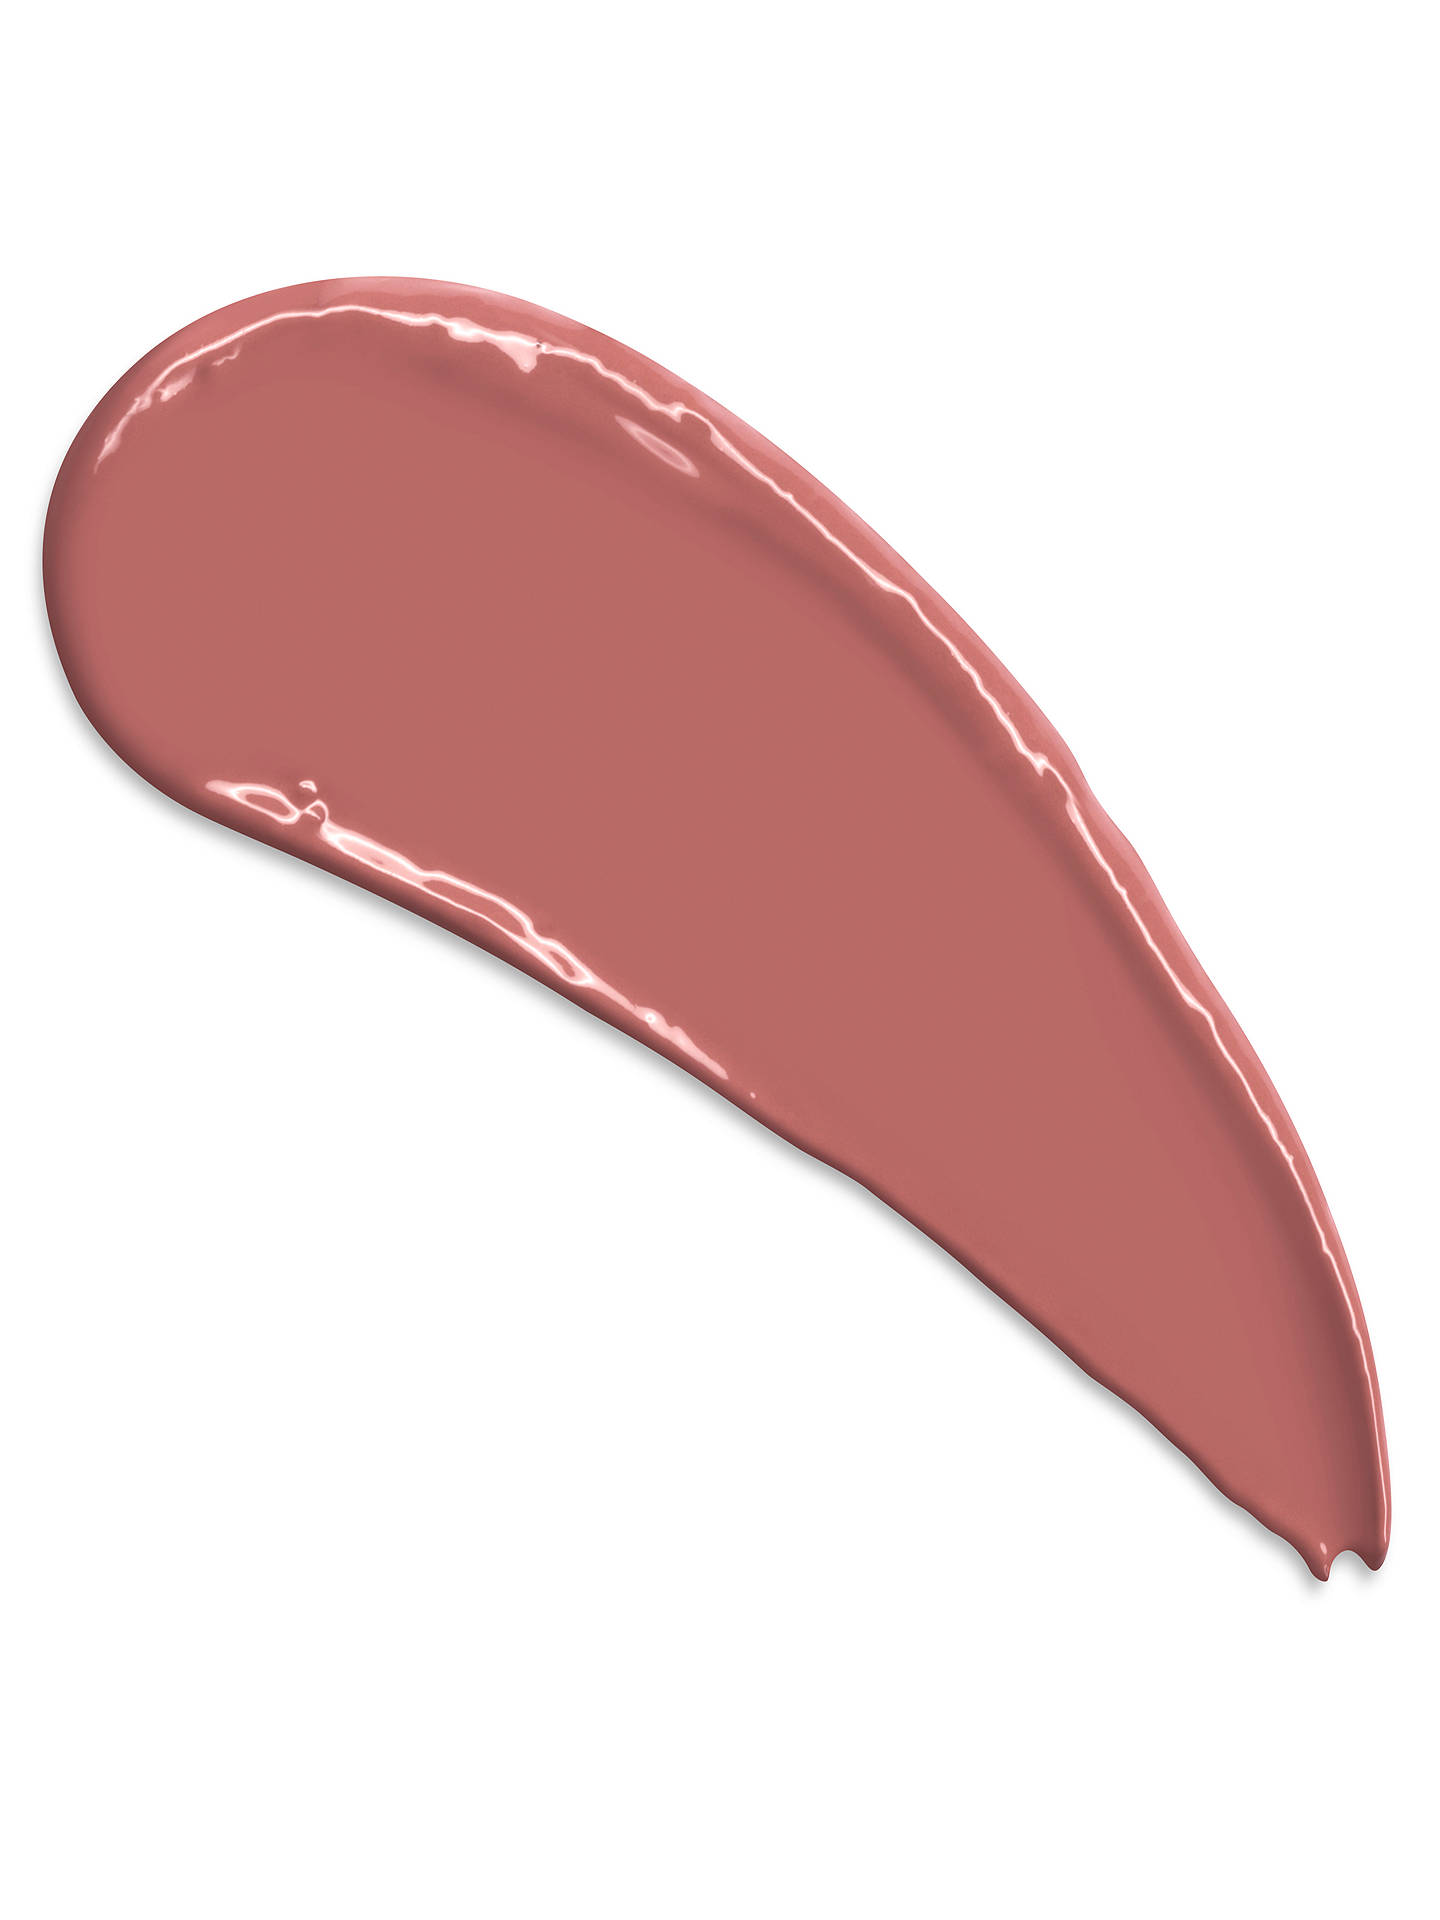 Buy Charlotte Tilbury Hot Lips 2.0, In Love With Olivia Online at johnlewis.com